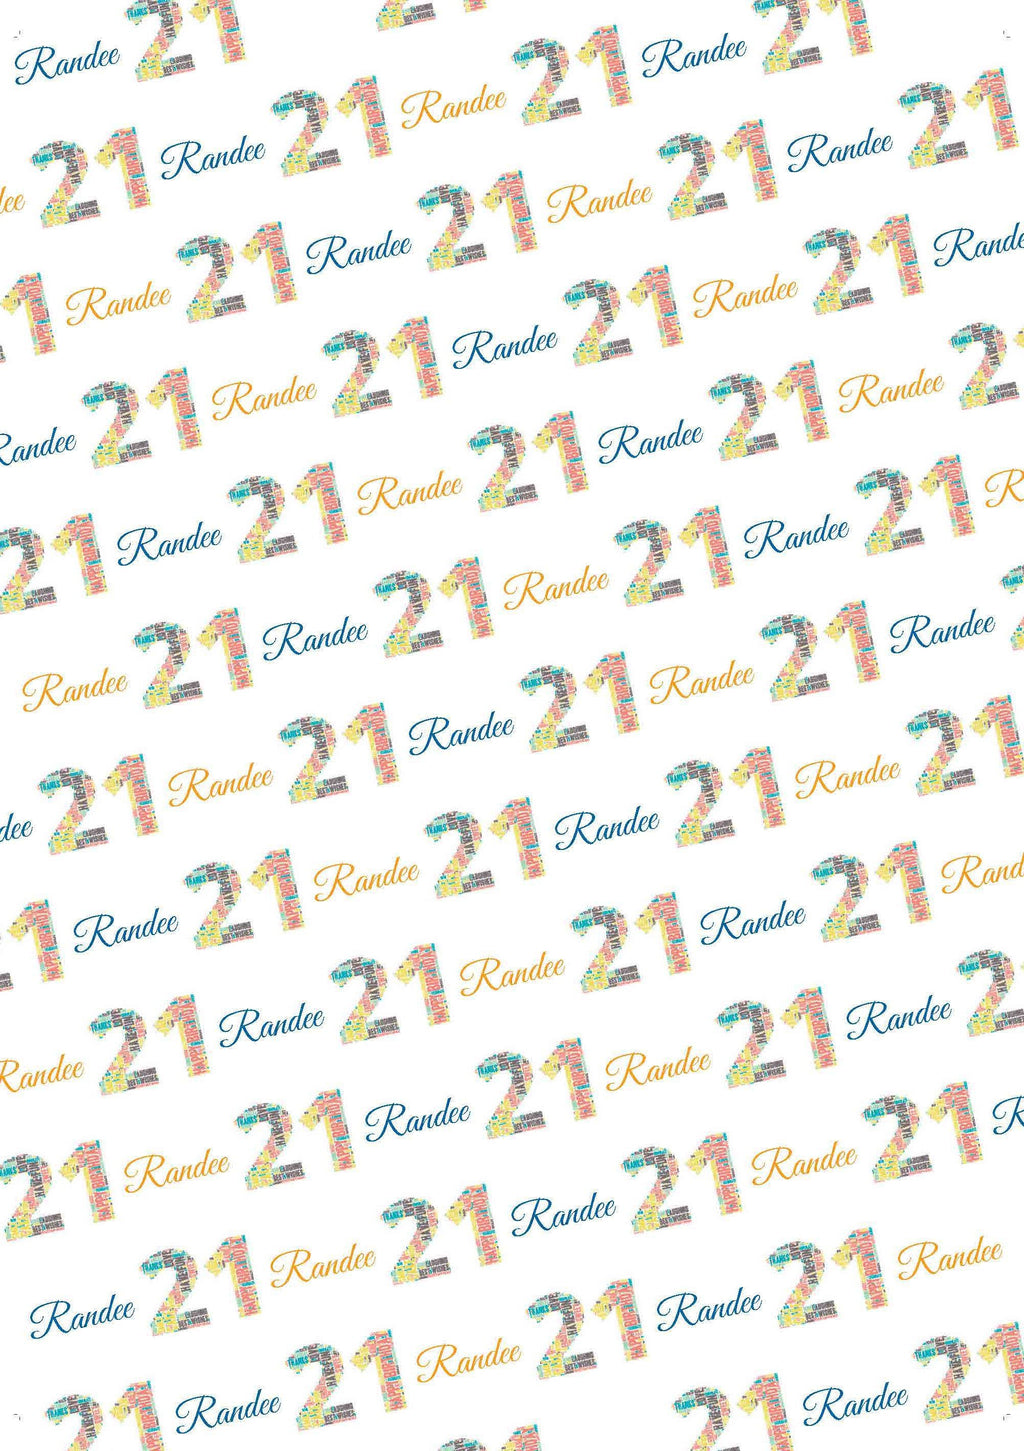 21st Birthday Words Personalized Birthday Gift Wrap - Potter's Printing